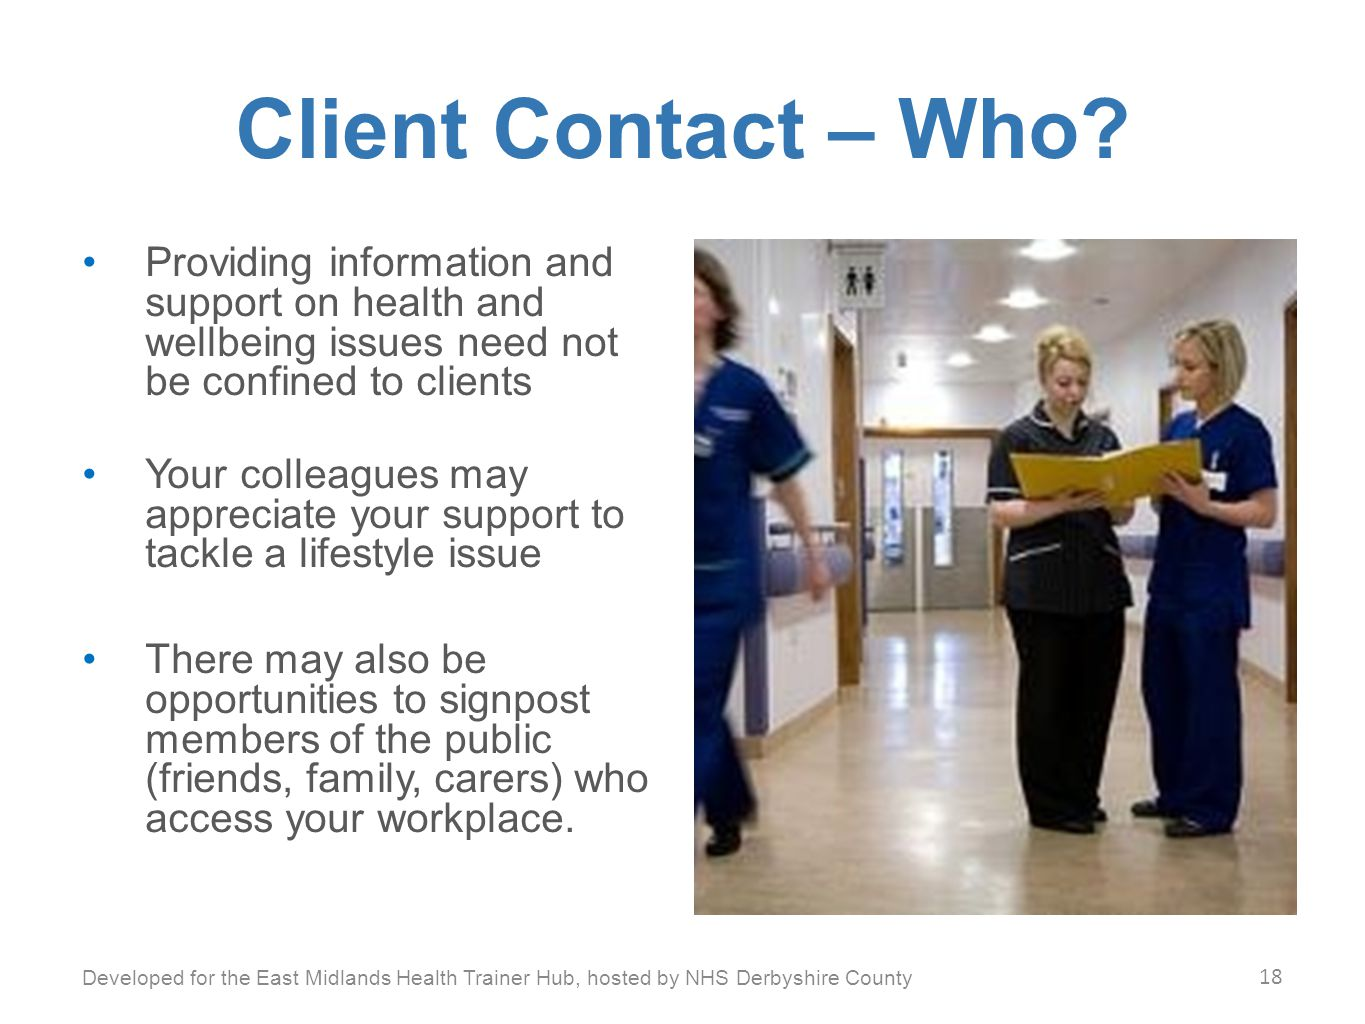 Client Contact – Who? Providing information and support on health and wellbeing issues need not be confined to clients Your colleagues may appreciate